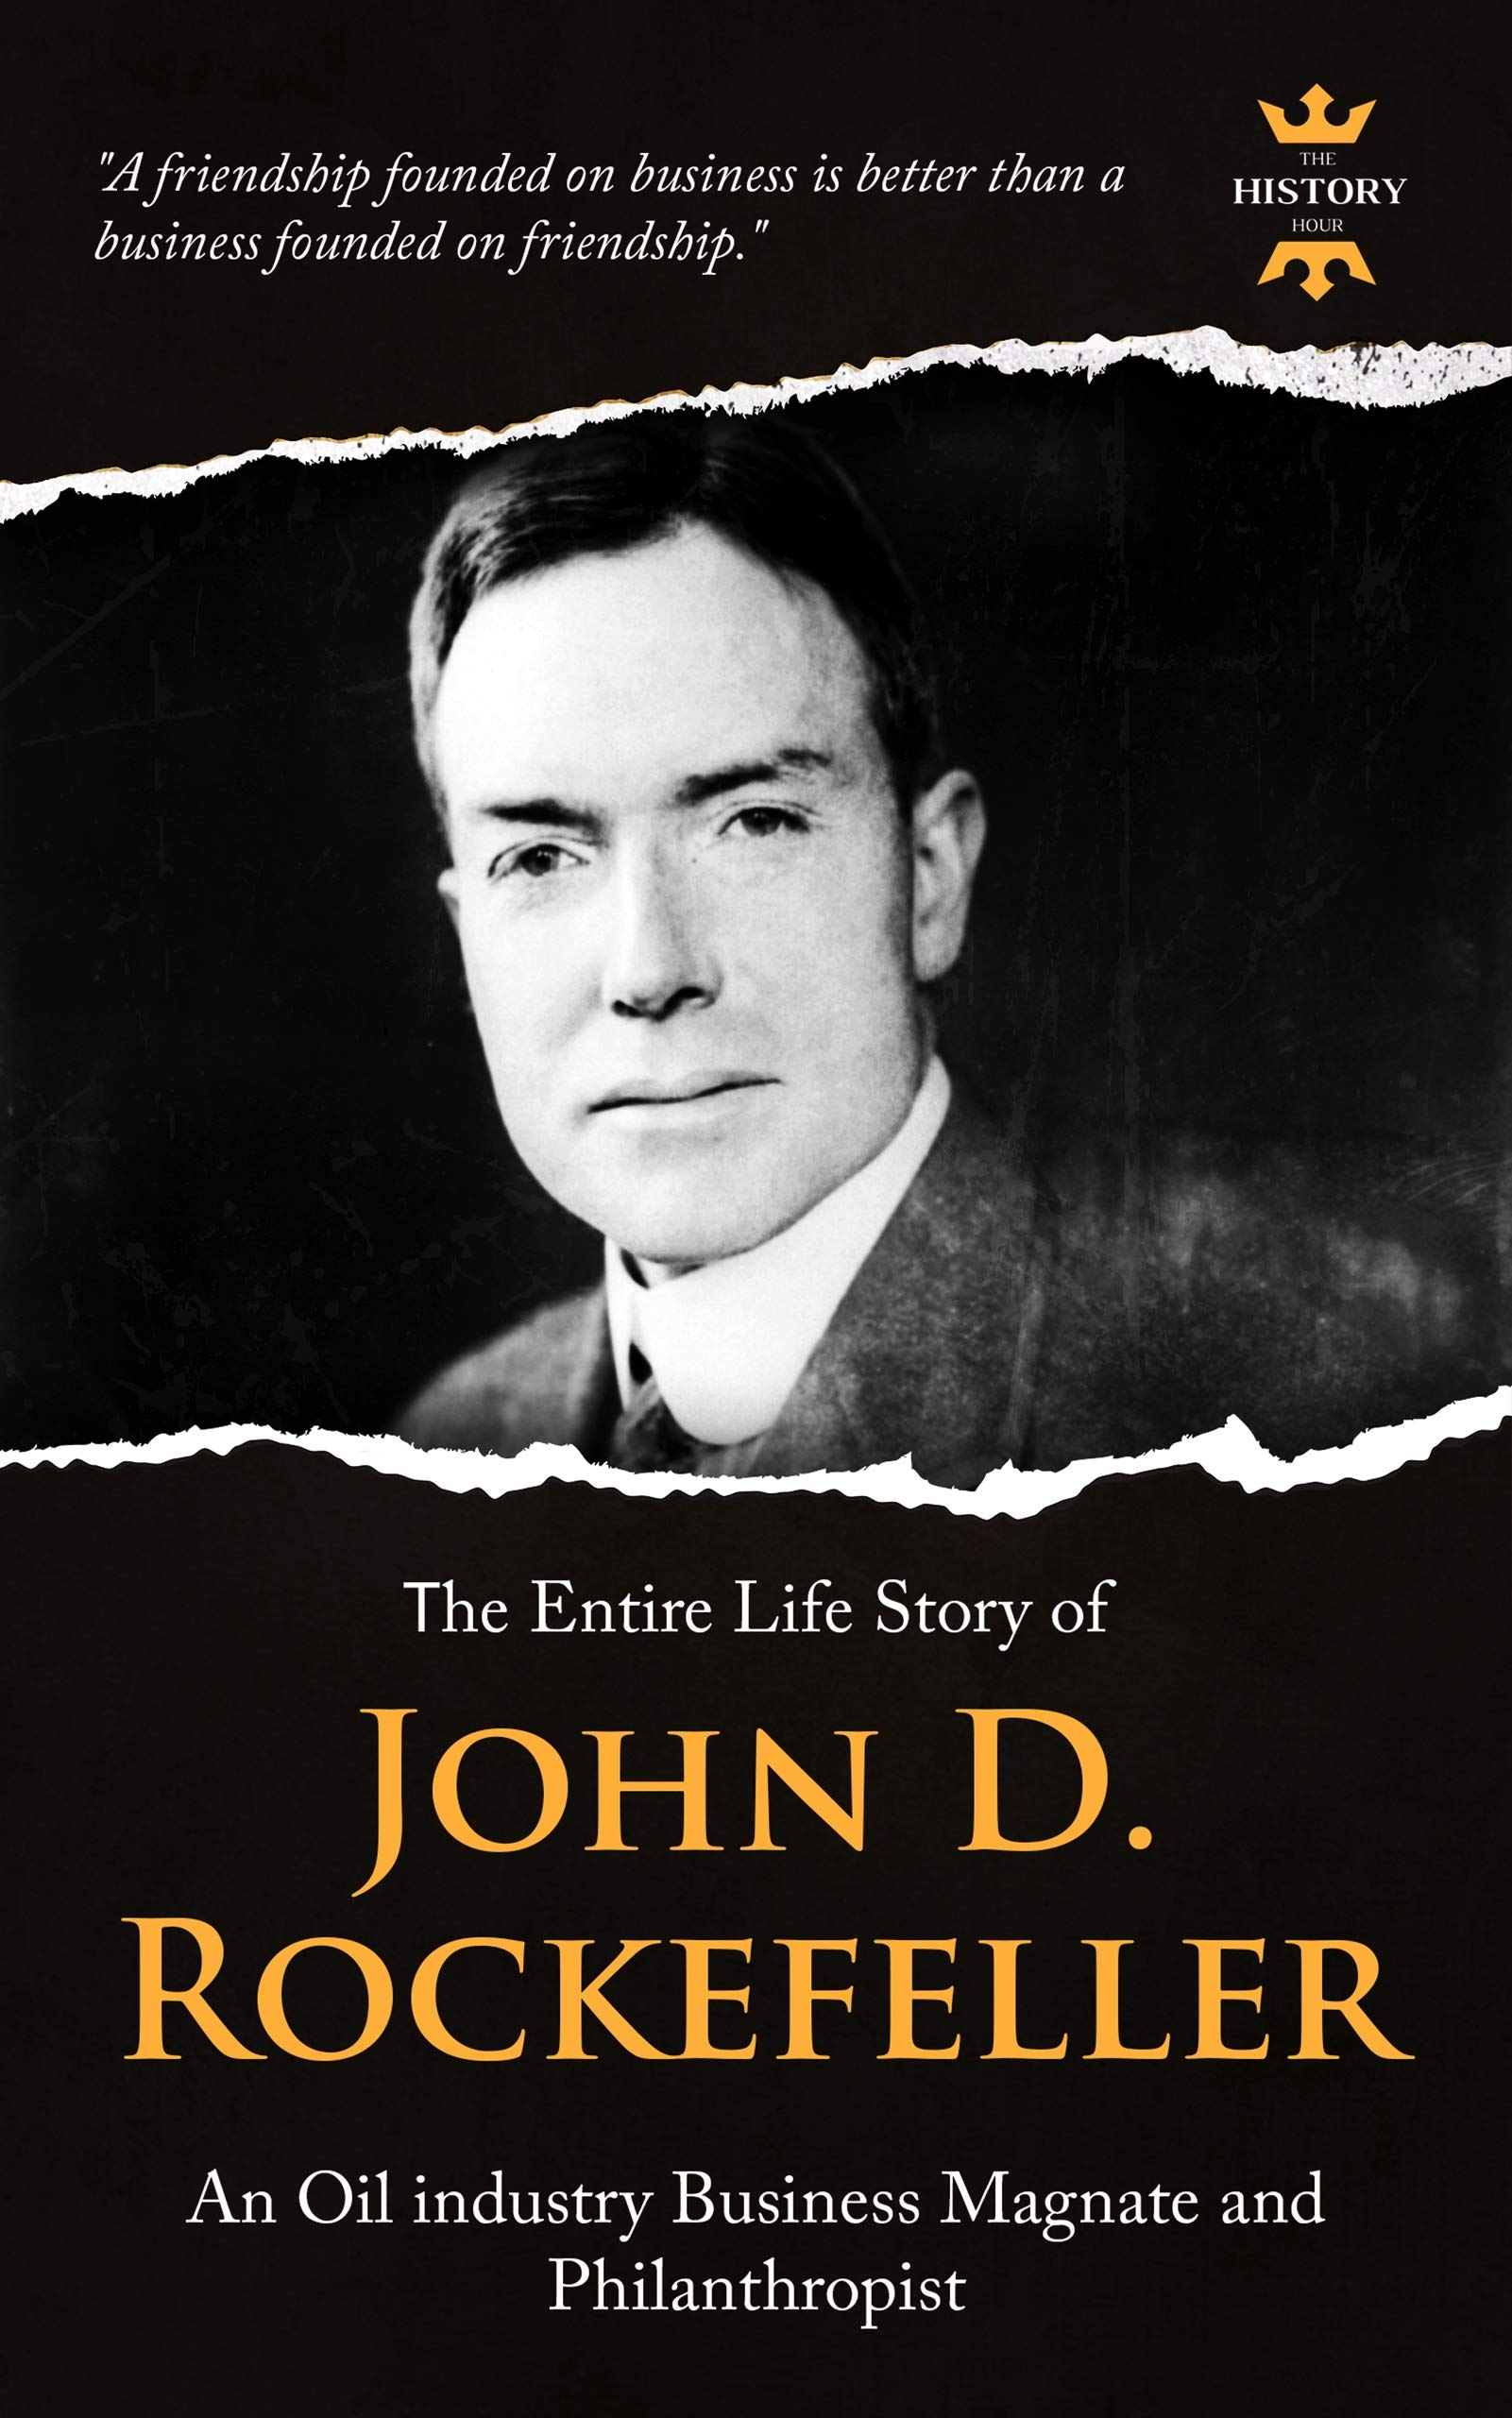 JOHN D. ROCKEFELLER, SR.: An Oil industry Business Magnate and Philanthropist. The Entire Life Story. Biography, Facts & Quotes (Great Biographies Book 4)